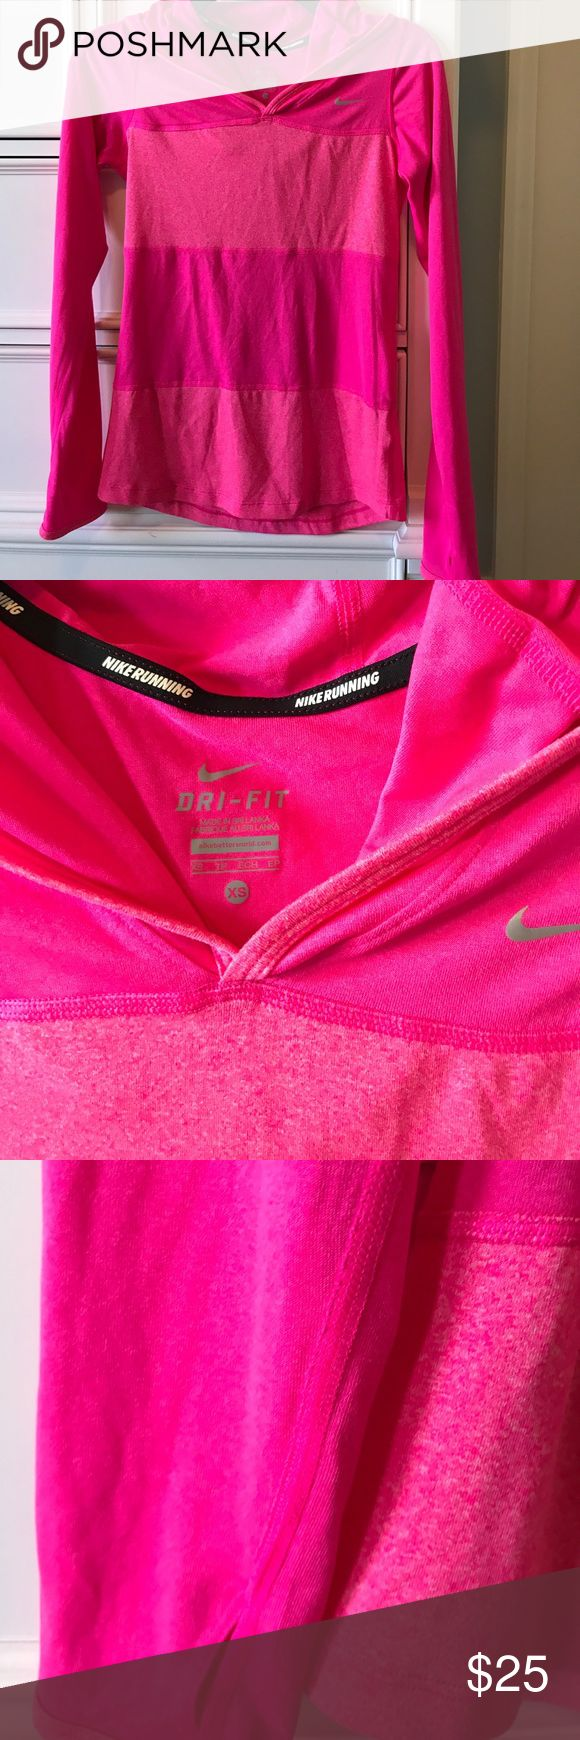 Nike Dry Fit Hooded Top Hot Pink Stripes Running This was only worn once because I'm terrible at going to the gym 😂 this is in great condition no flaws. Size XS. This is lightweight and has a good and thumb holes to keep your hands warm and sleeves down when running. Perfect for layering when working out/running. 🌸bundle and save!🌸 Nike Tops Sweatshirts & Hoodies